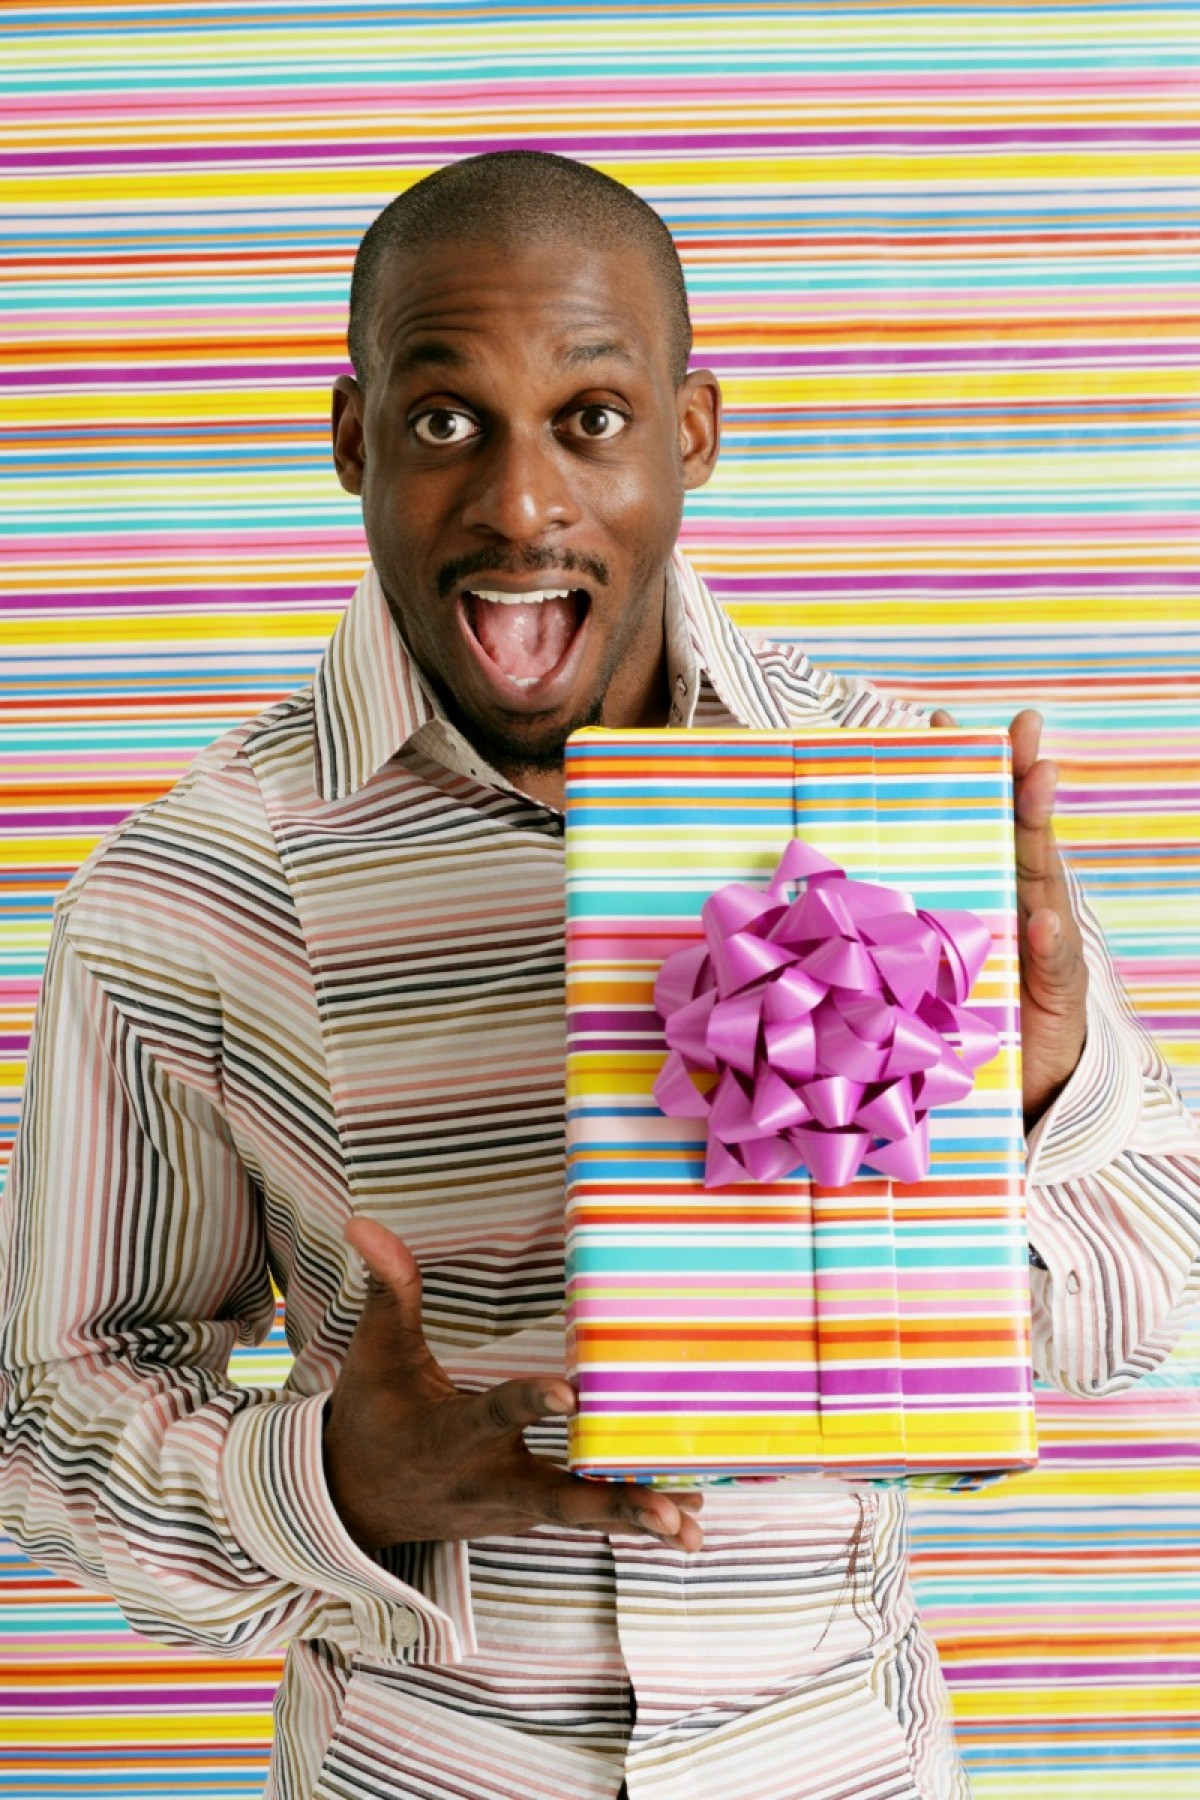 A 30 Year Old Man Holding Gift